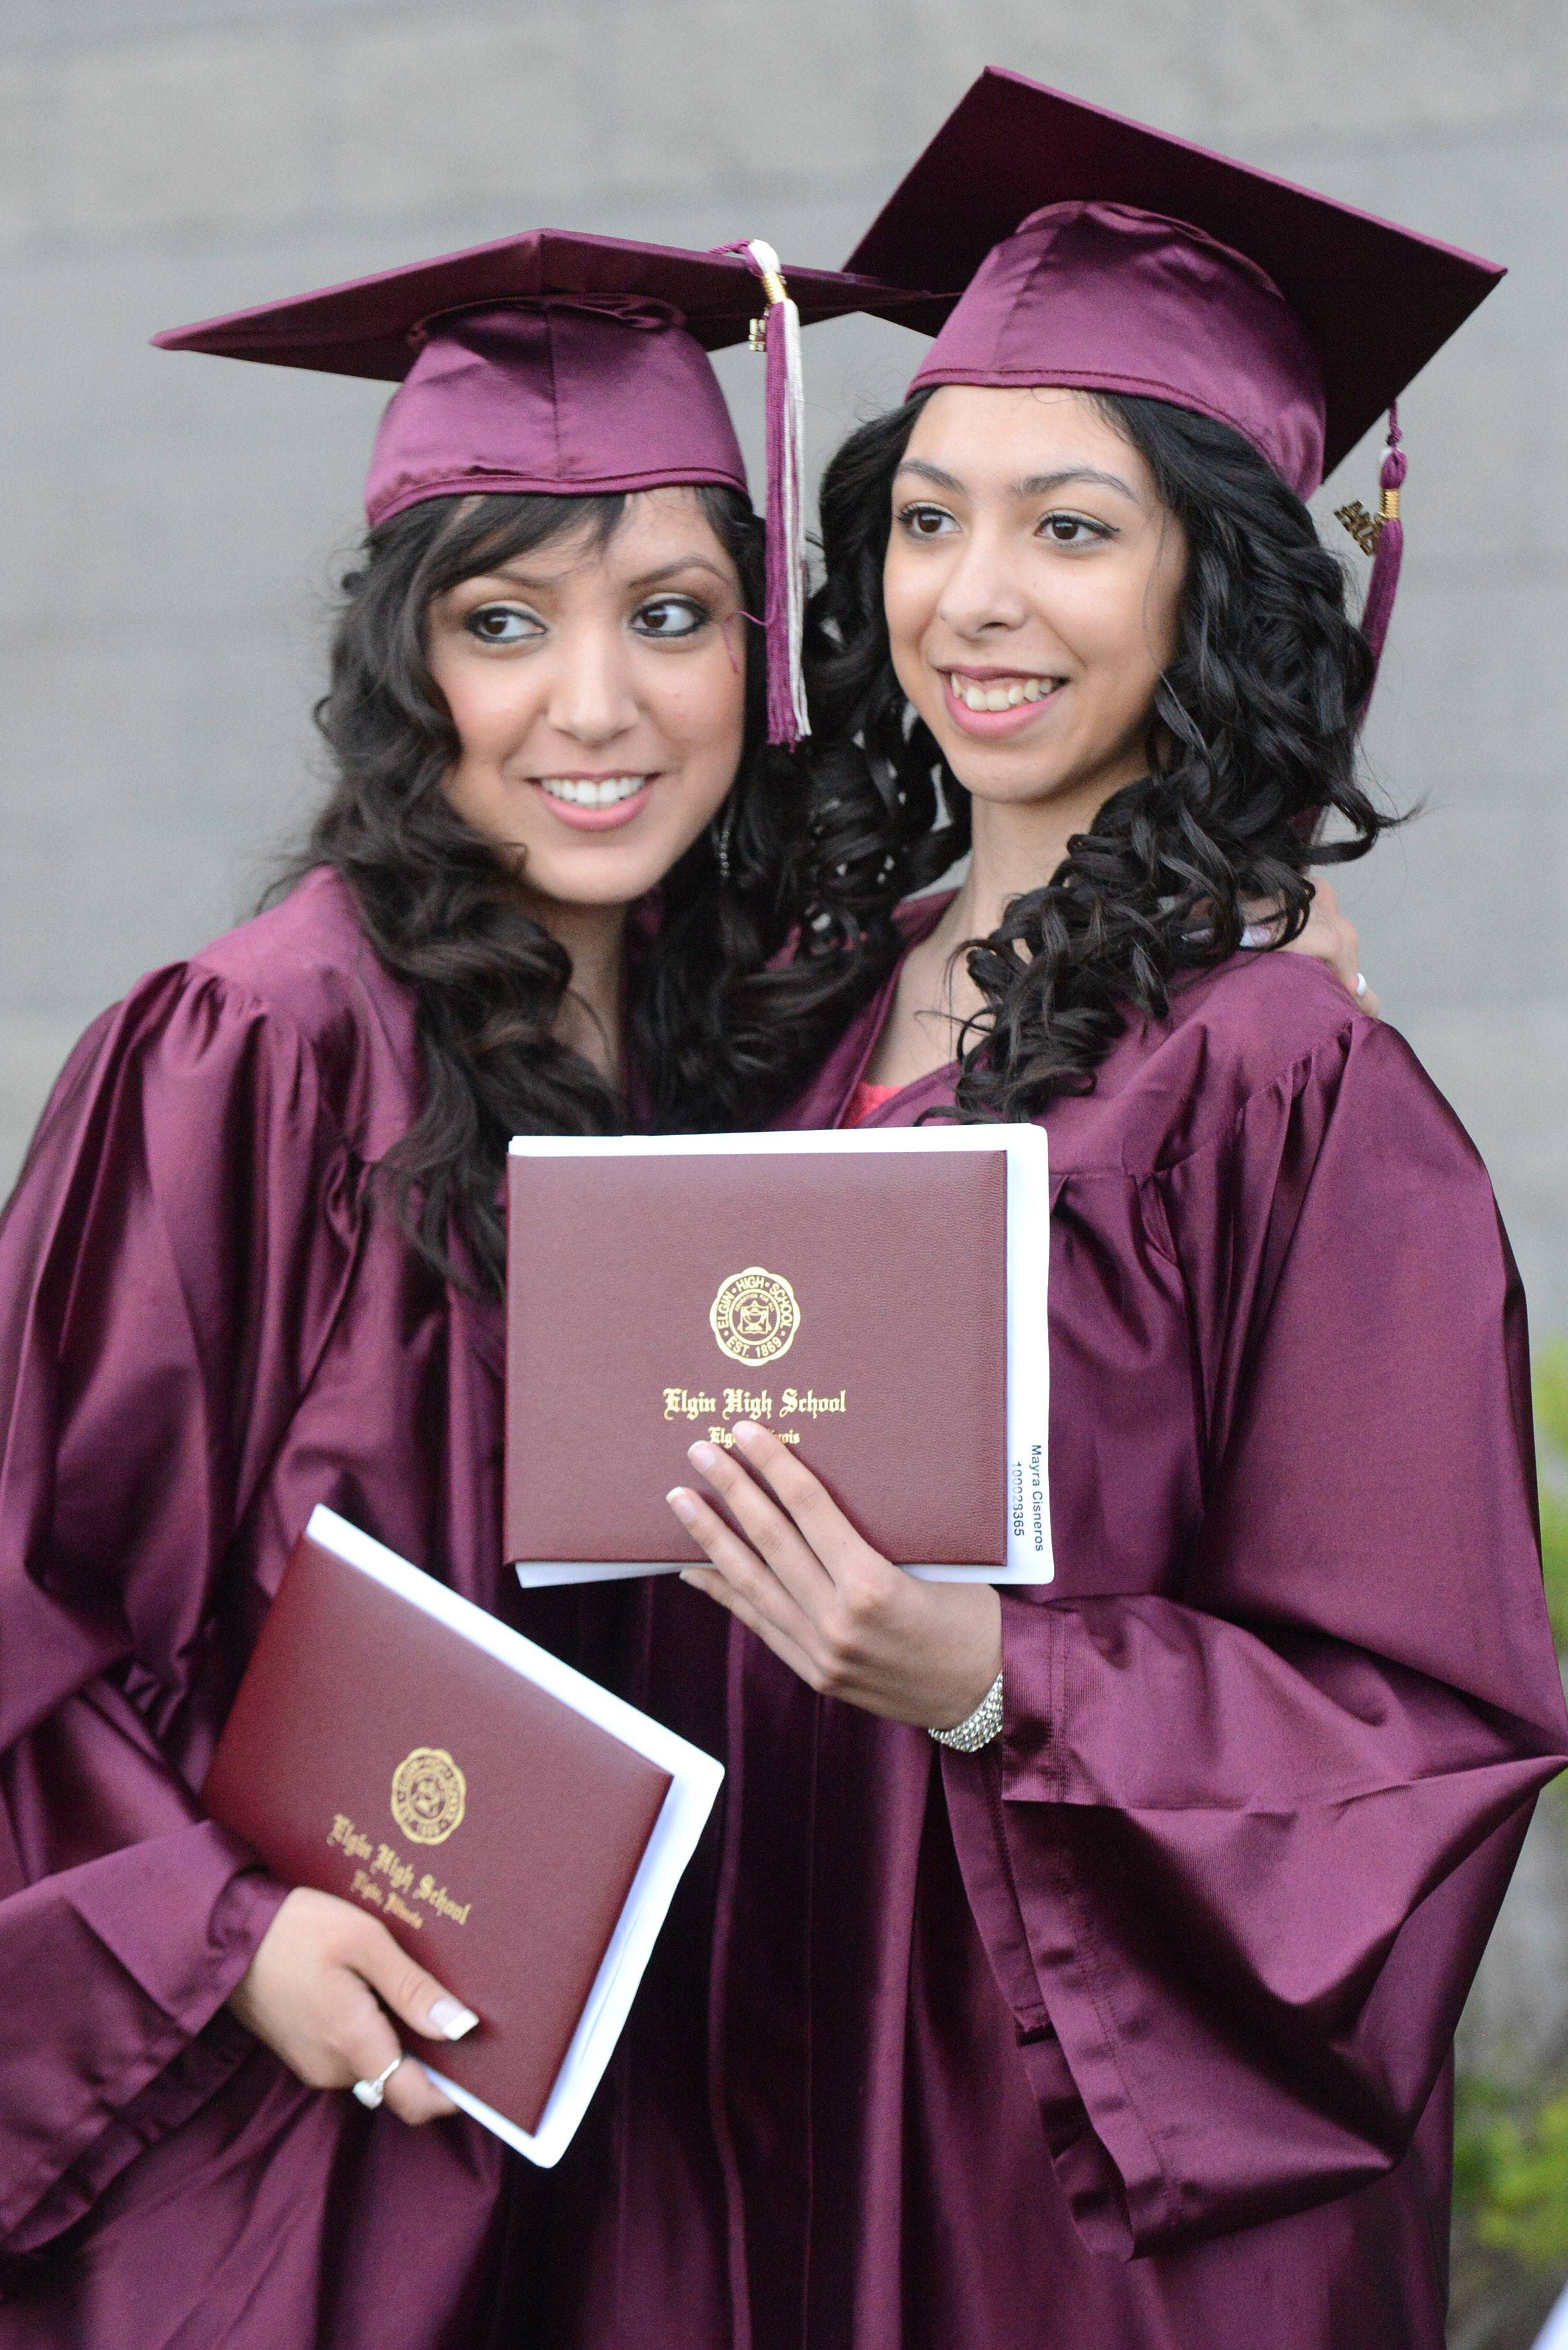 Elgin High School graduates Adriana Martinez, left, and Mayra Cisneros, both of Elgin, pose with their diplomas after their commencement ceremony at the Sears Centre in Hoffman Estates on Saturday, May 24.